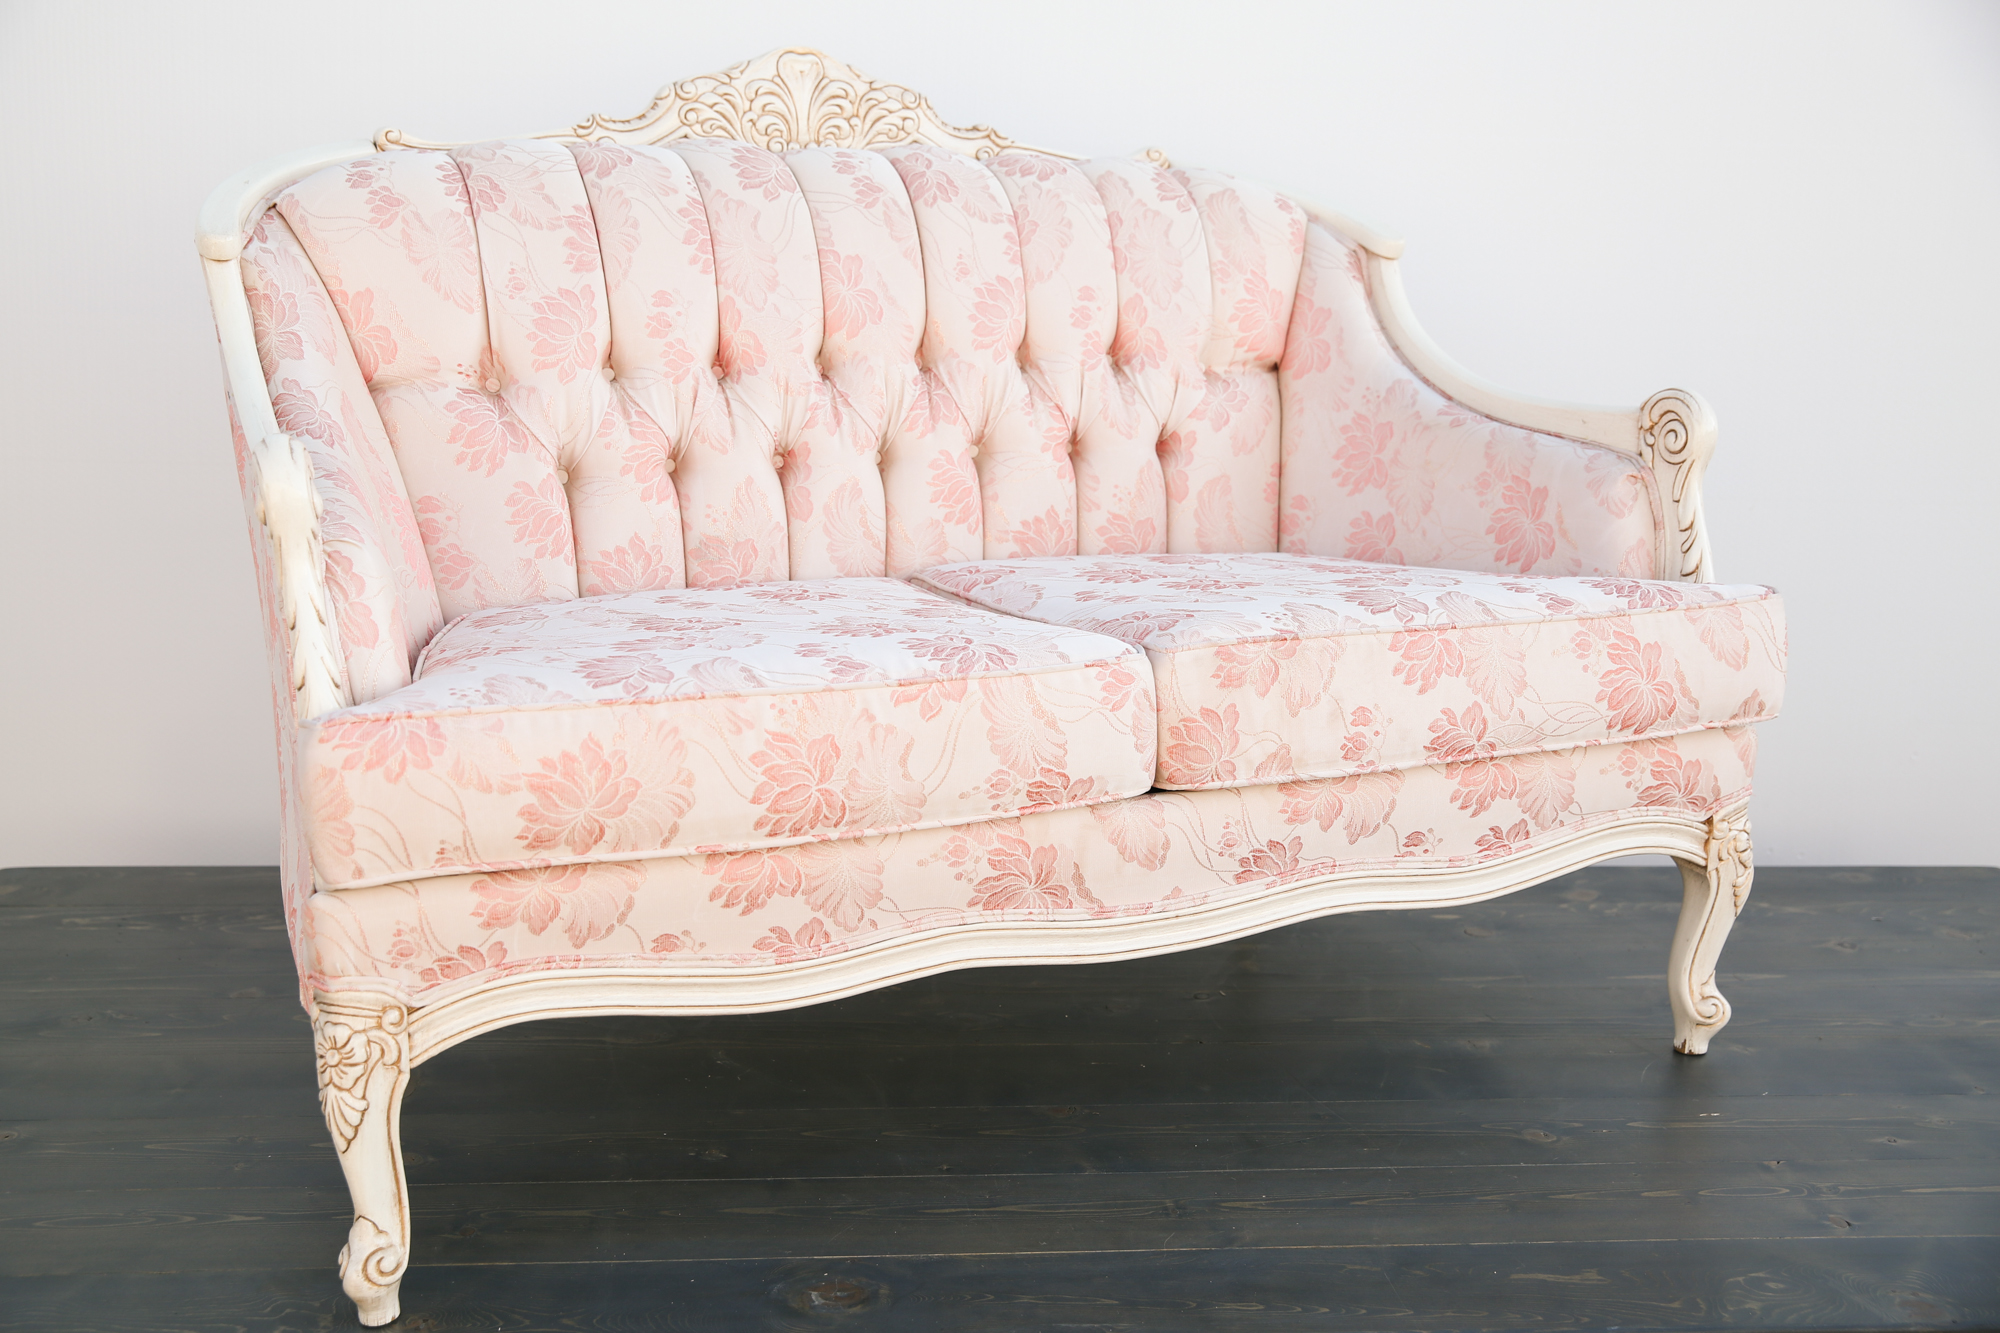 Blush Pink Settee Out Of The Dust Rentals